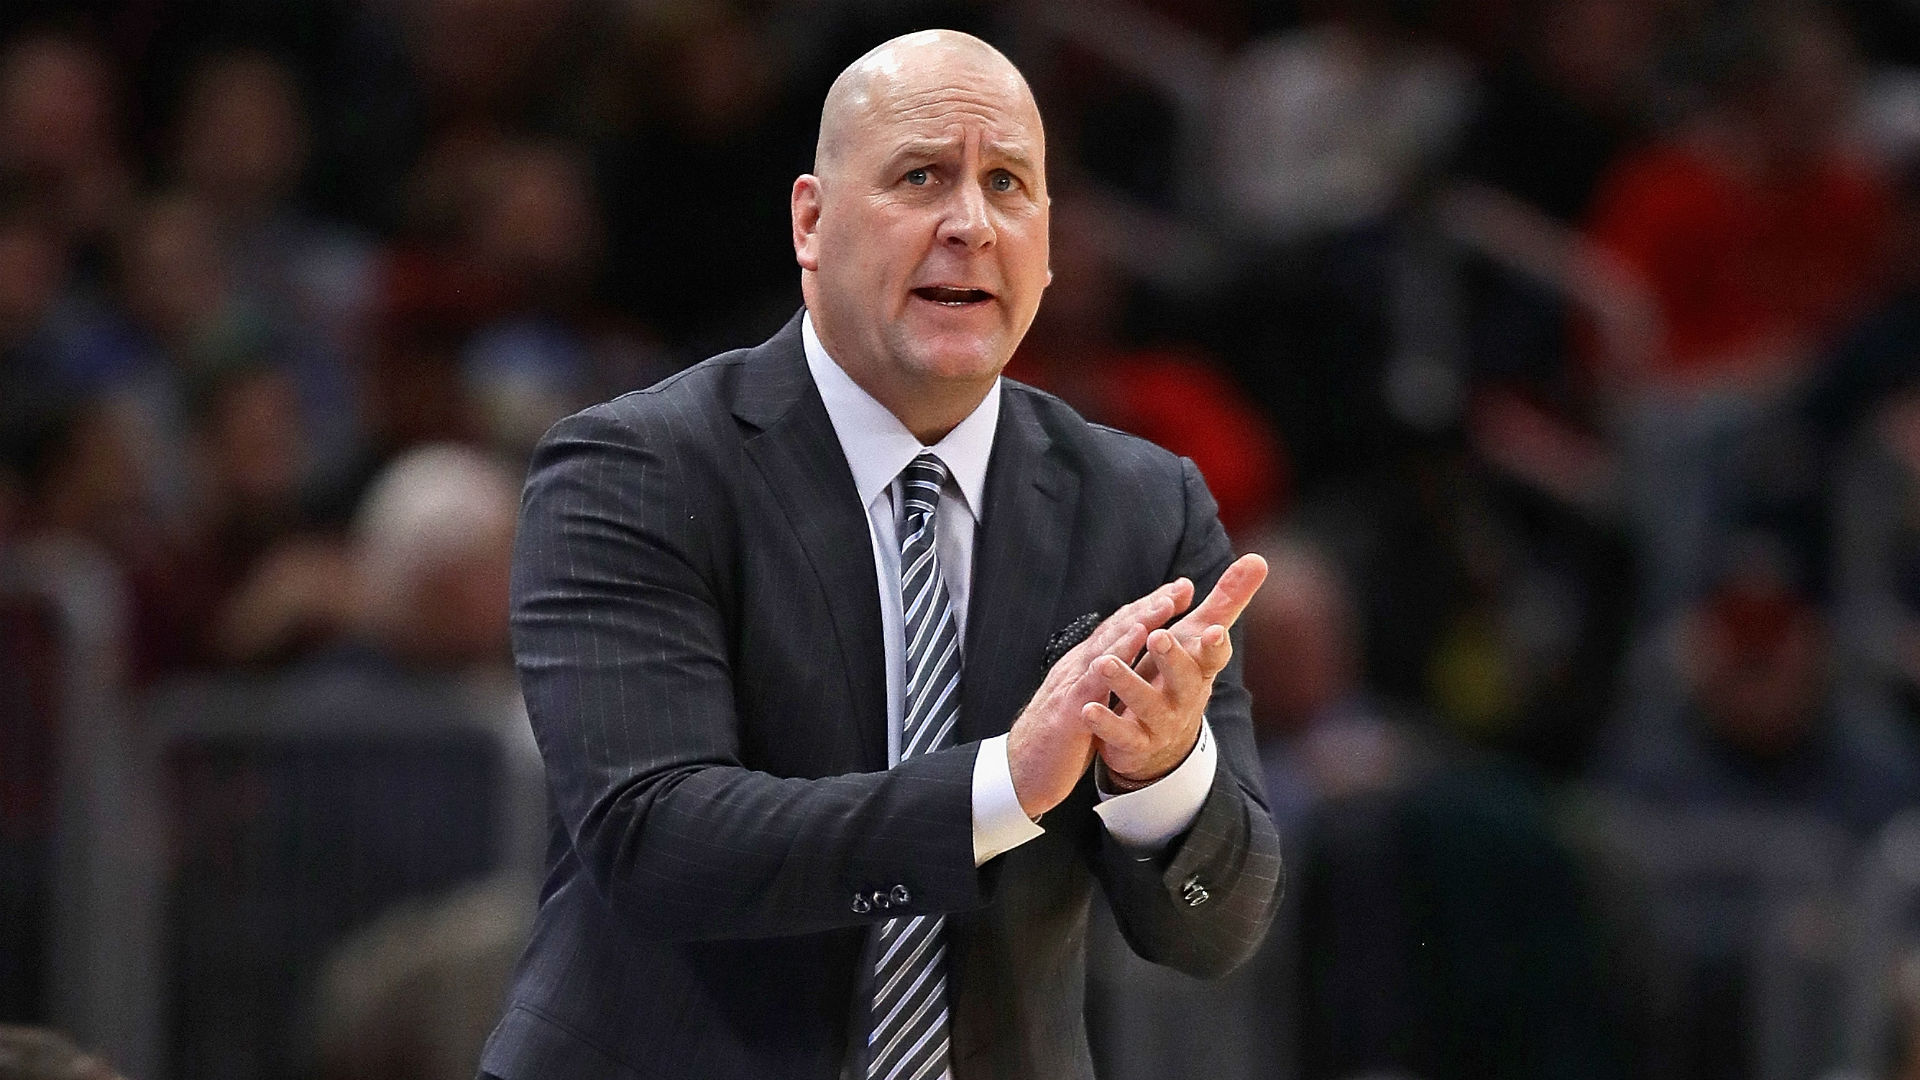 Photo of Bulls to take patient approach to decide on coach Jim Boylen's status, new vice president says